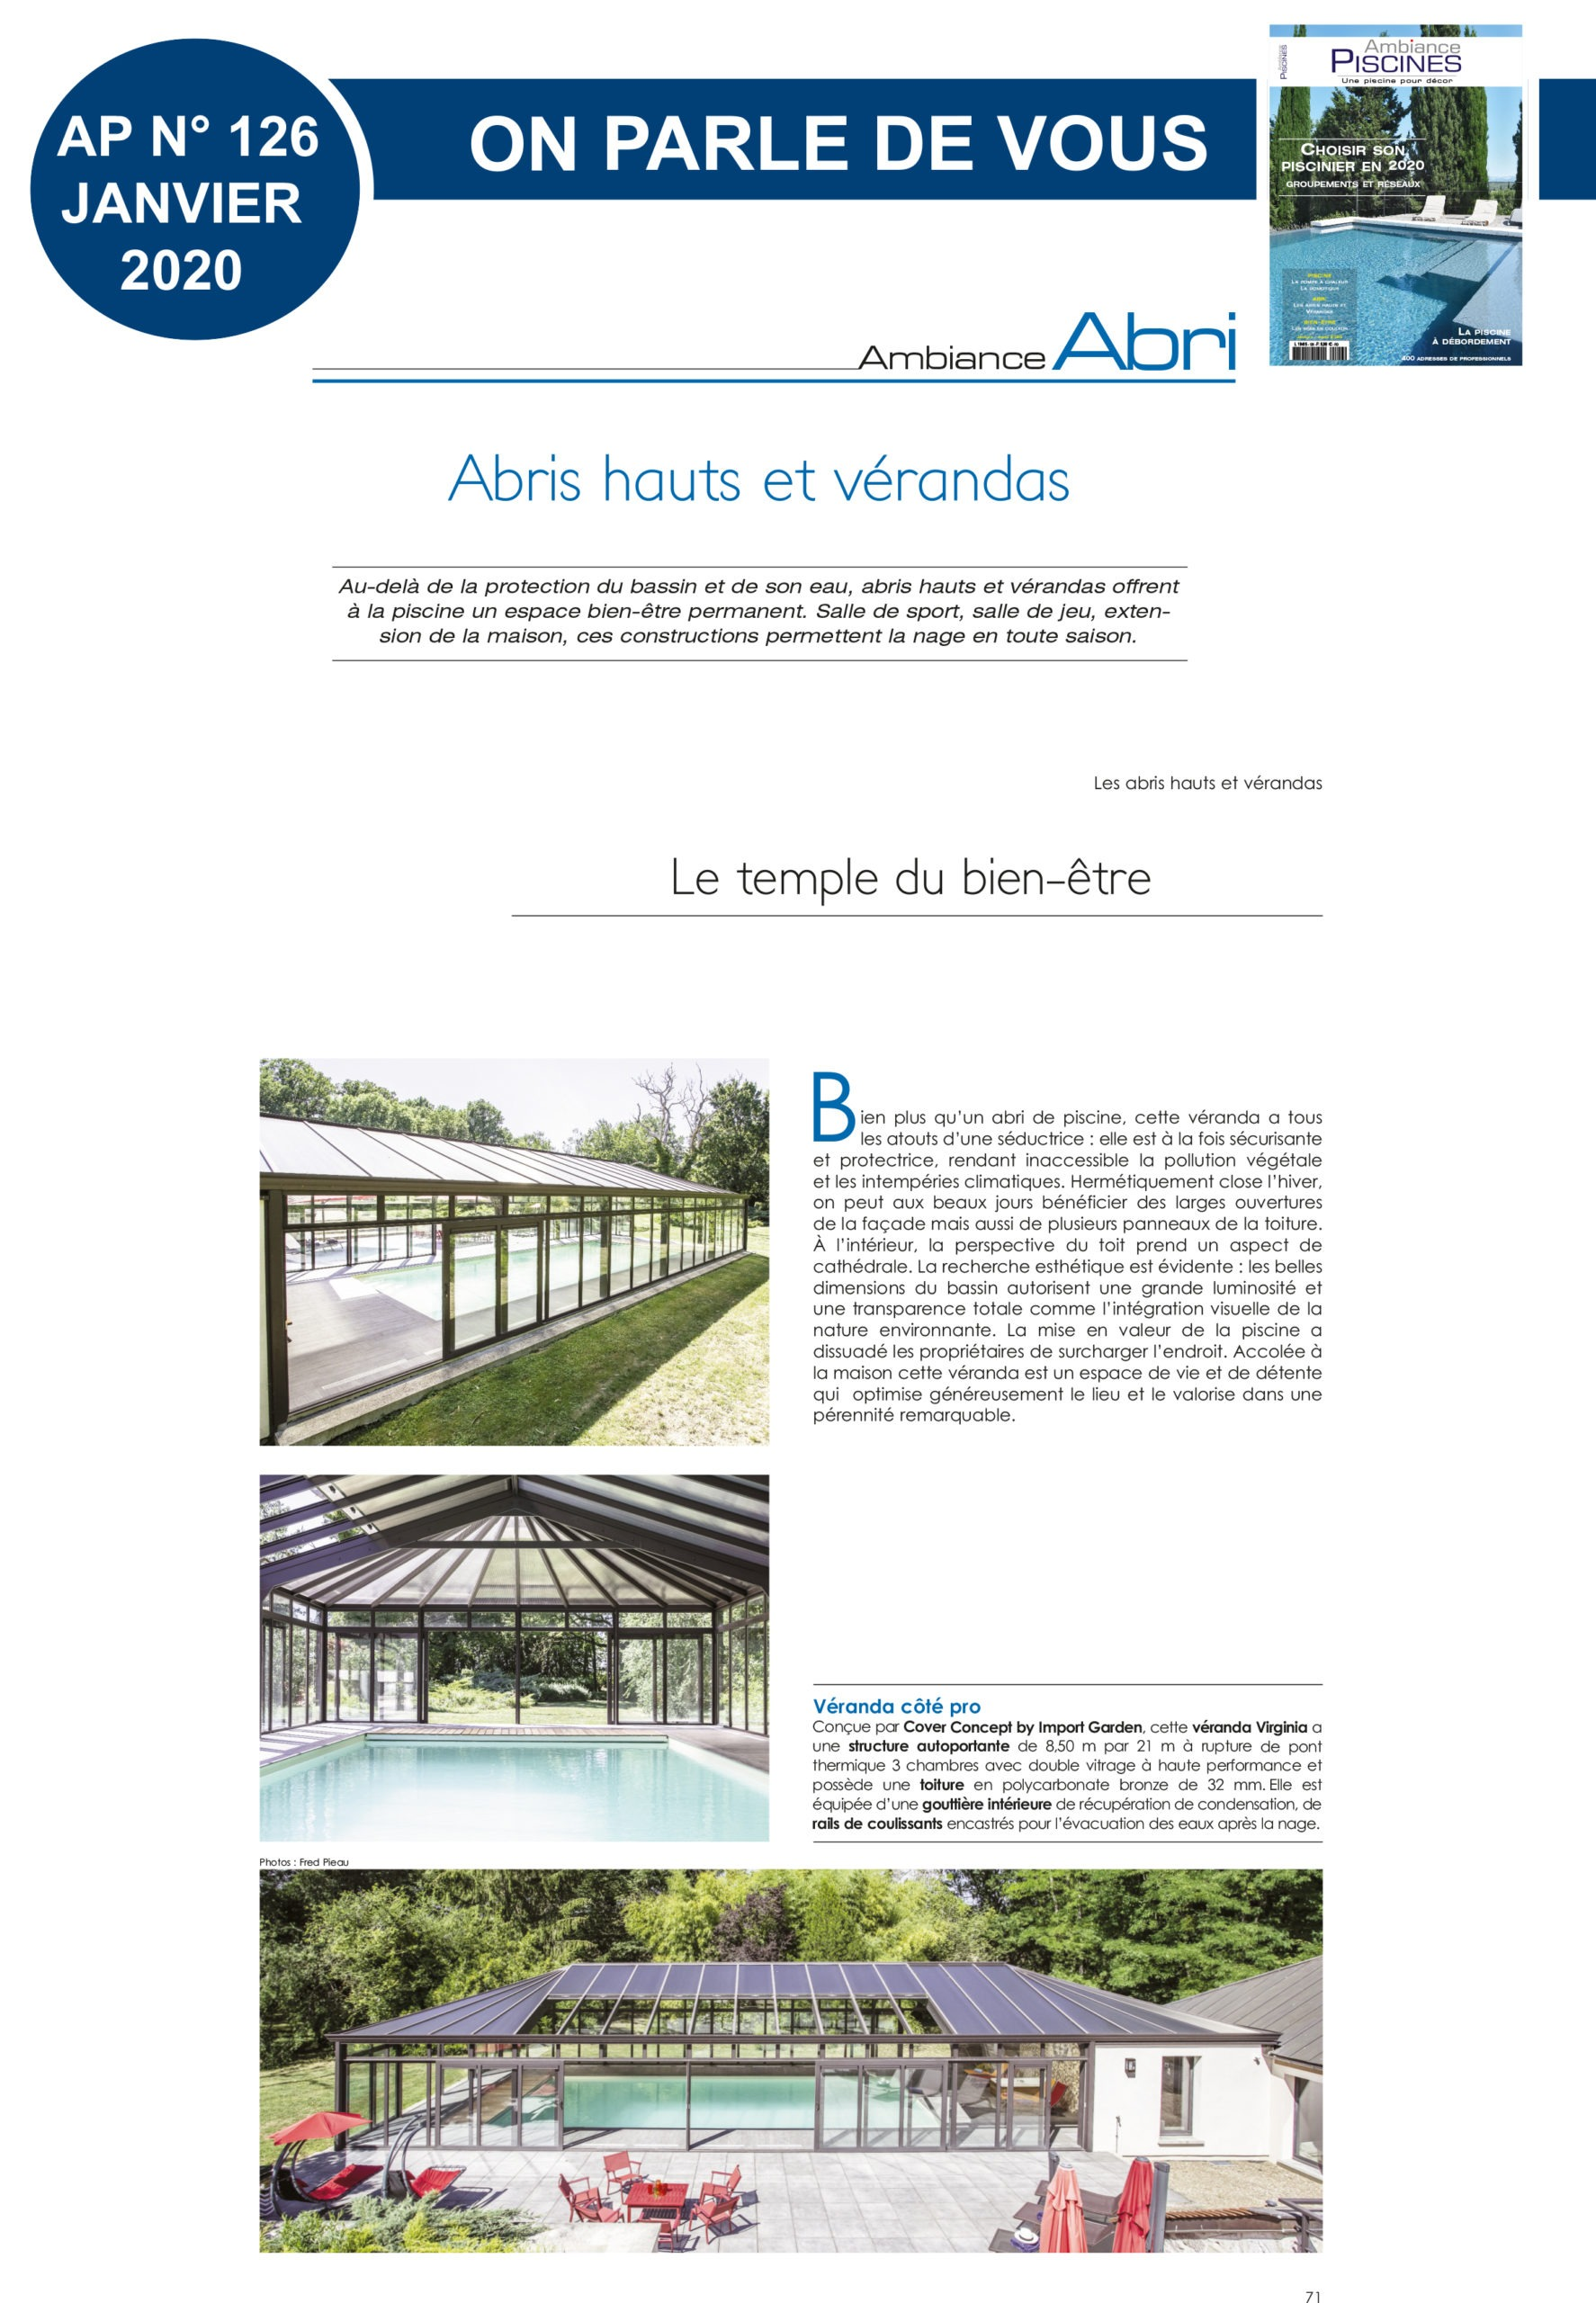 Ambiance Piscines : reportage Cover Concept